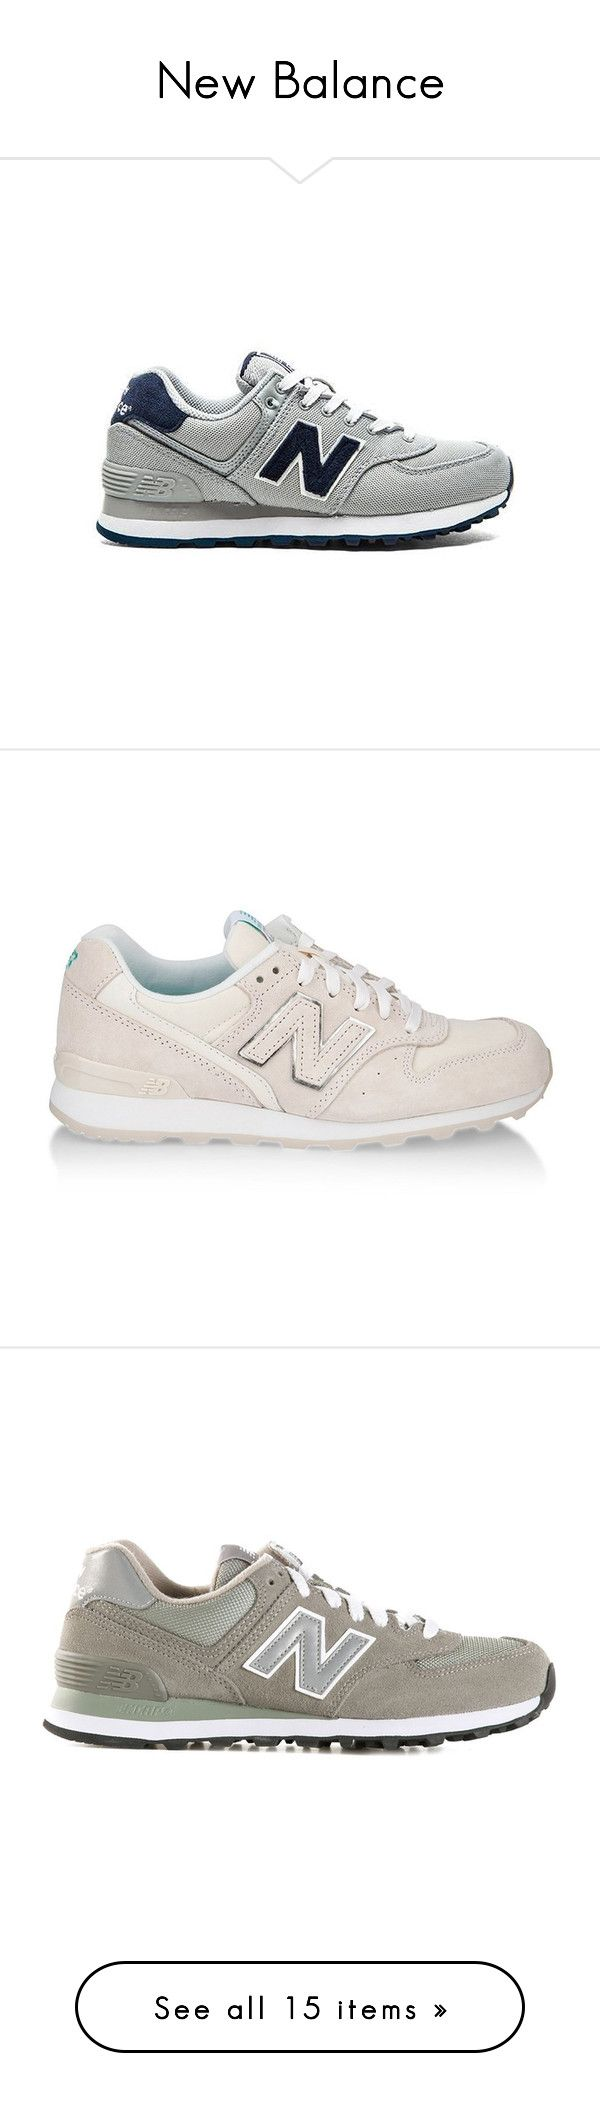 """""""New Balance"""" by baludna ❤ liked on Polyvore featuring shoes, sneakers, lace up shoes, new balance shoes, new balance trainers, new balance sneakers, laced shoes, new balance, nude and mesh shoes"""